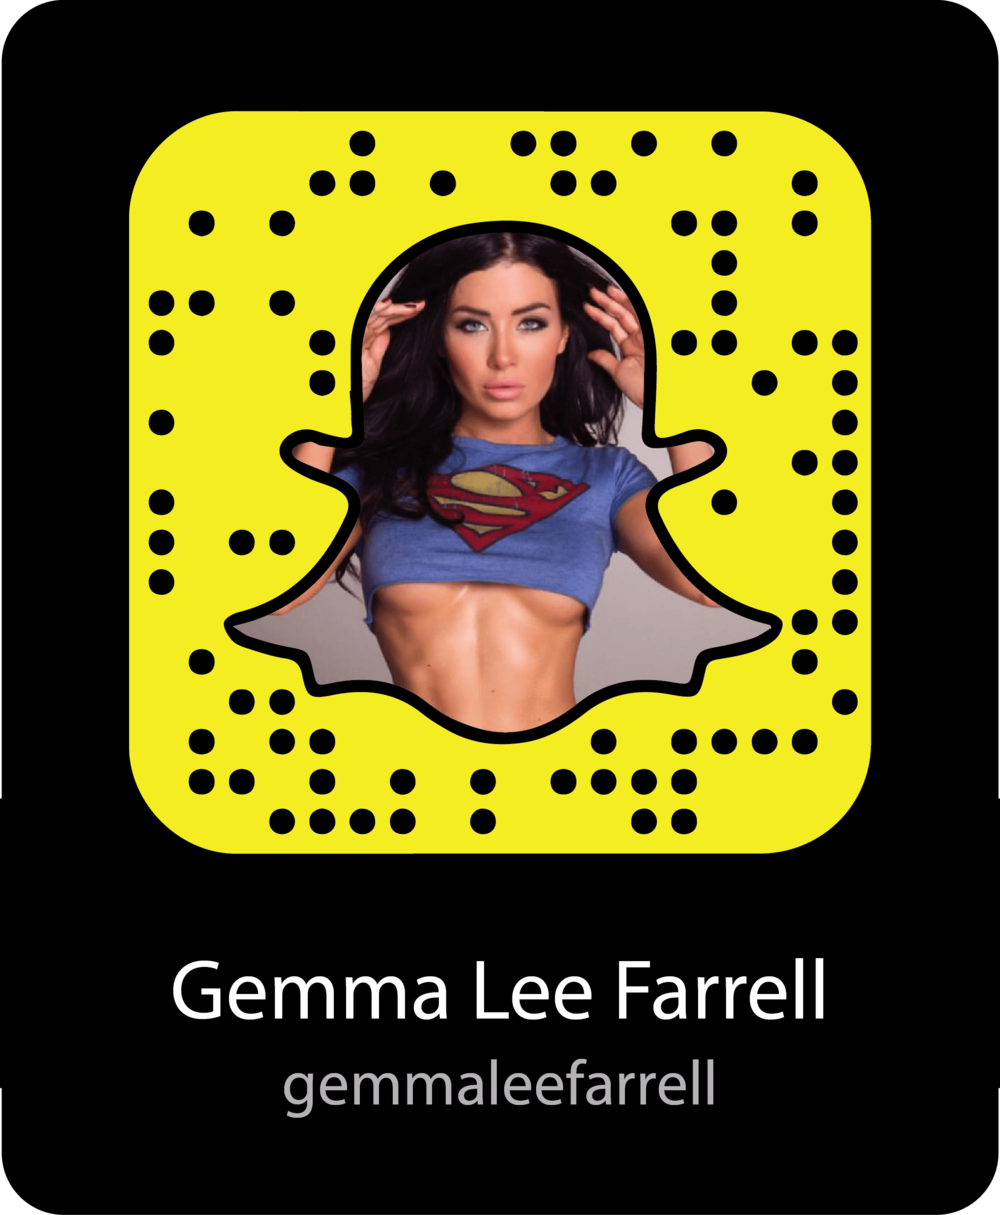 gemma-lee-farrell-sexy-snapchat-snapcode